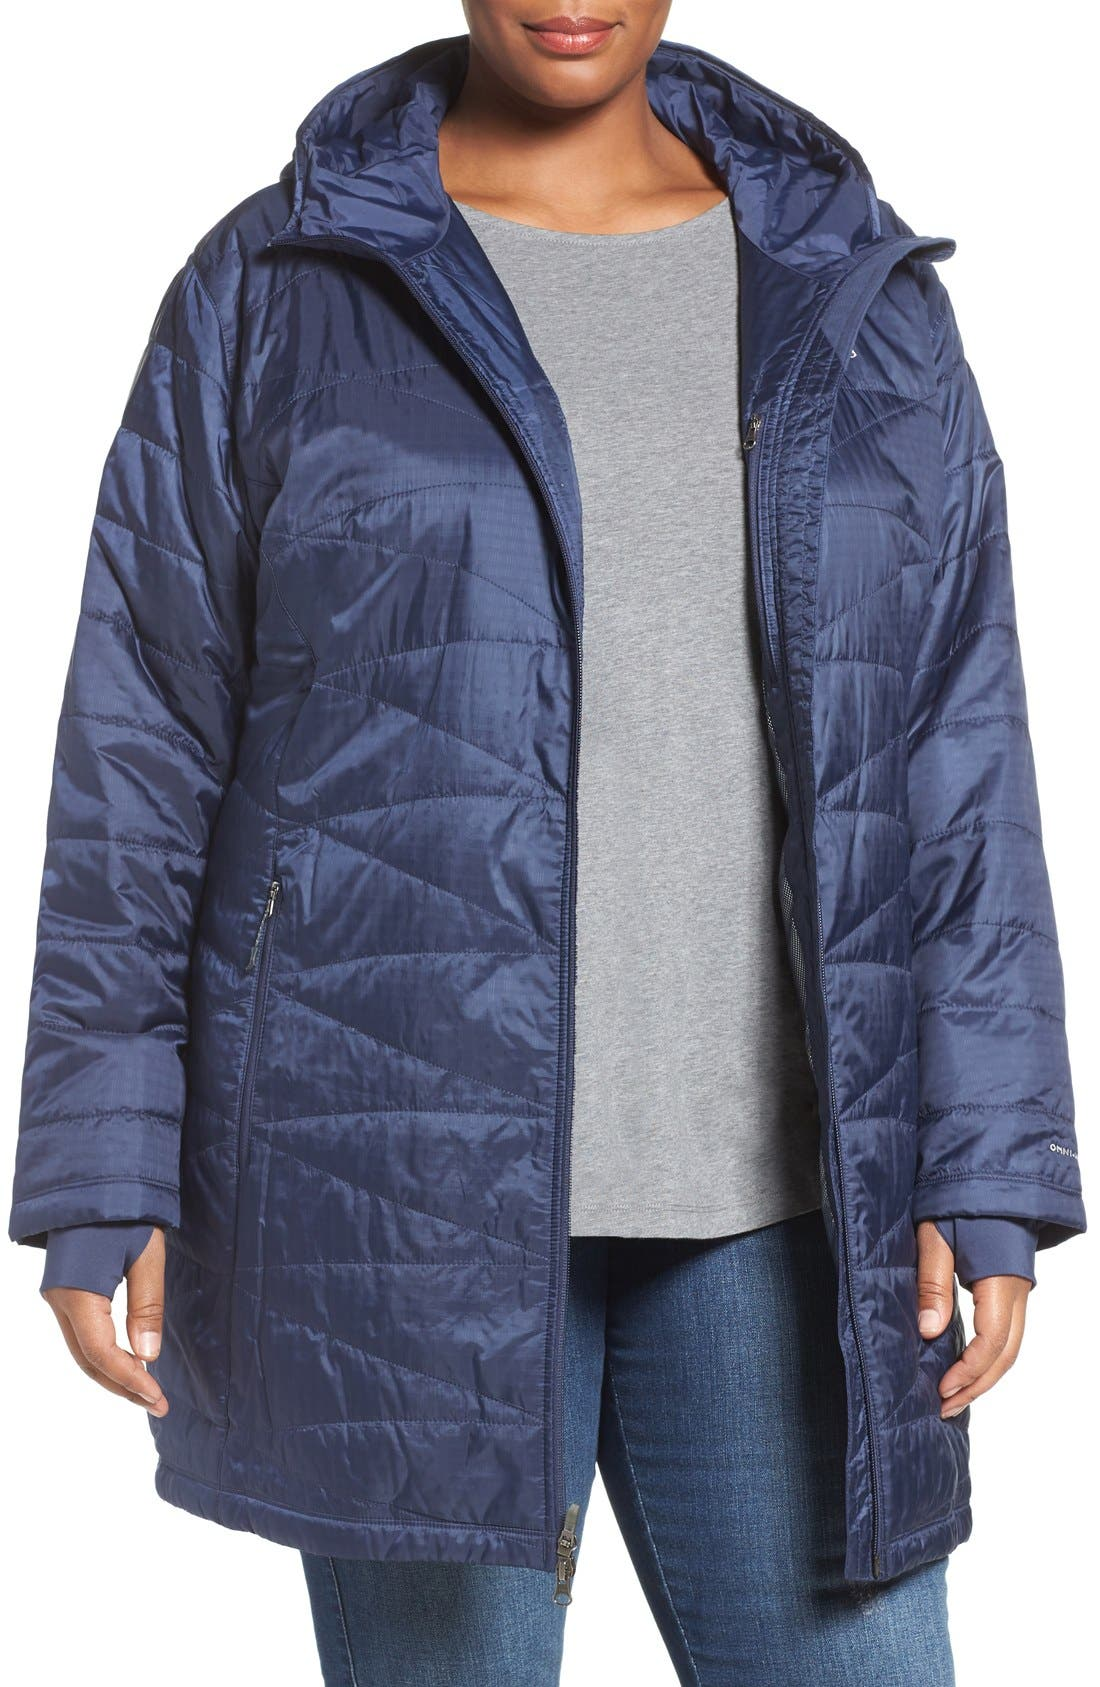 Mighty Lite Hooded Jacket,                             Main thumbnail 4, color,